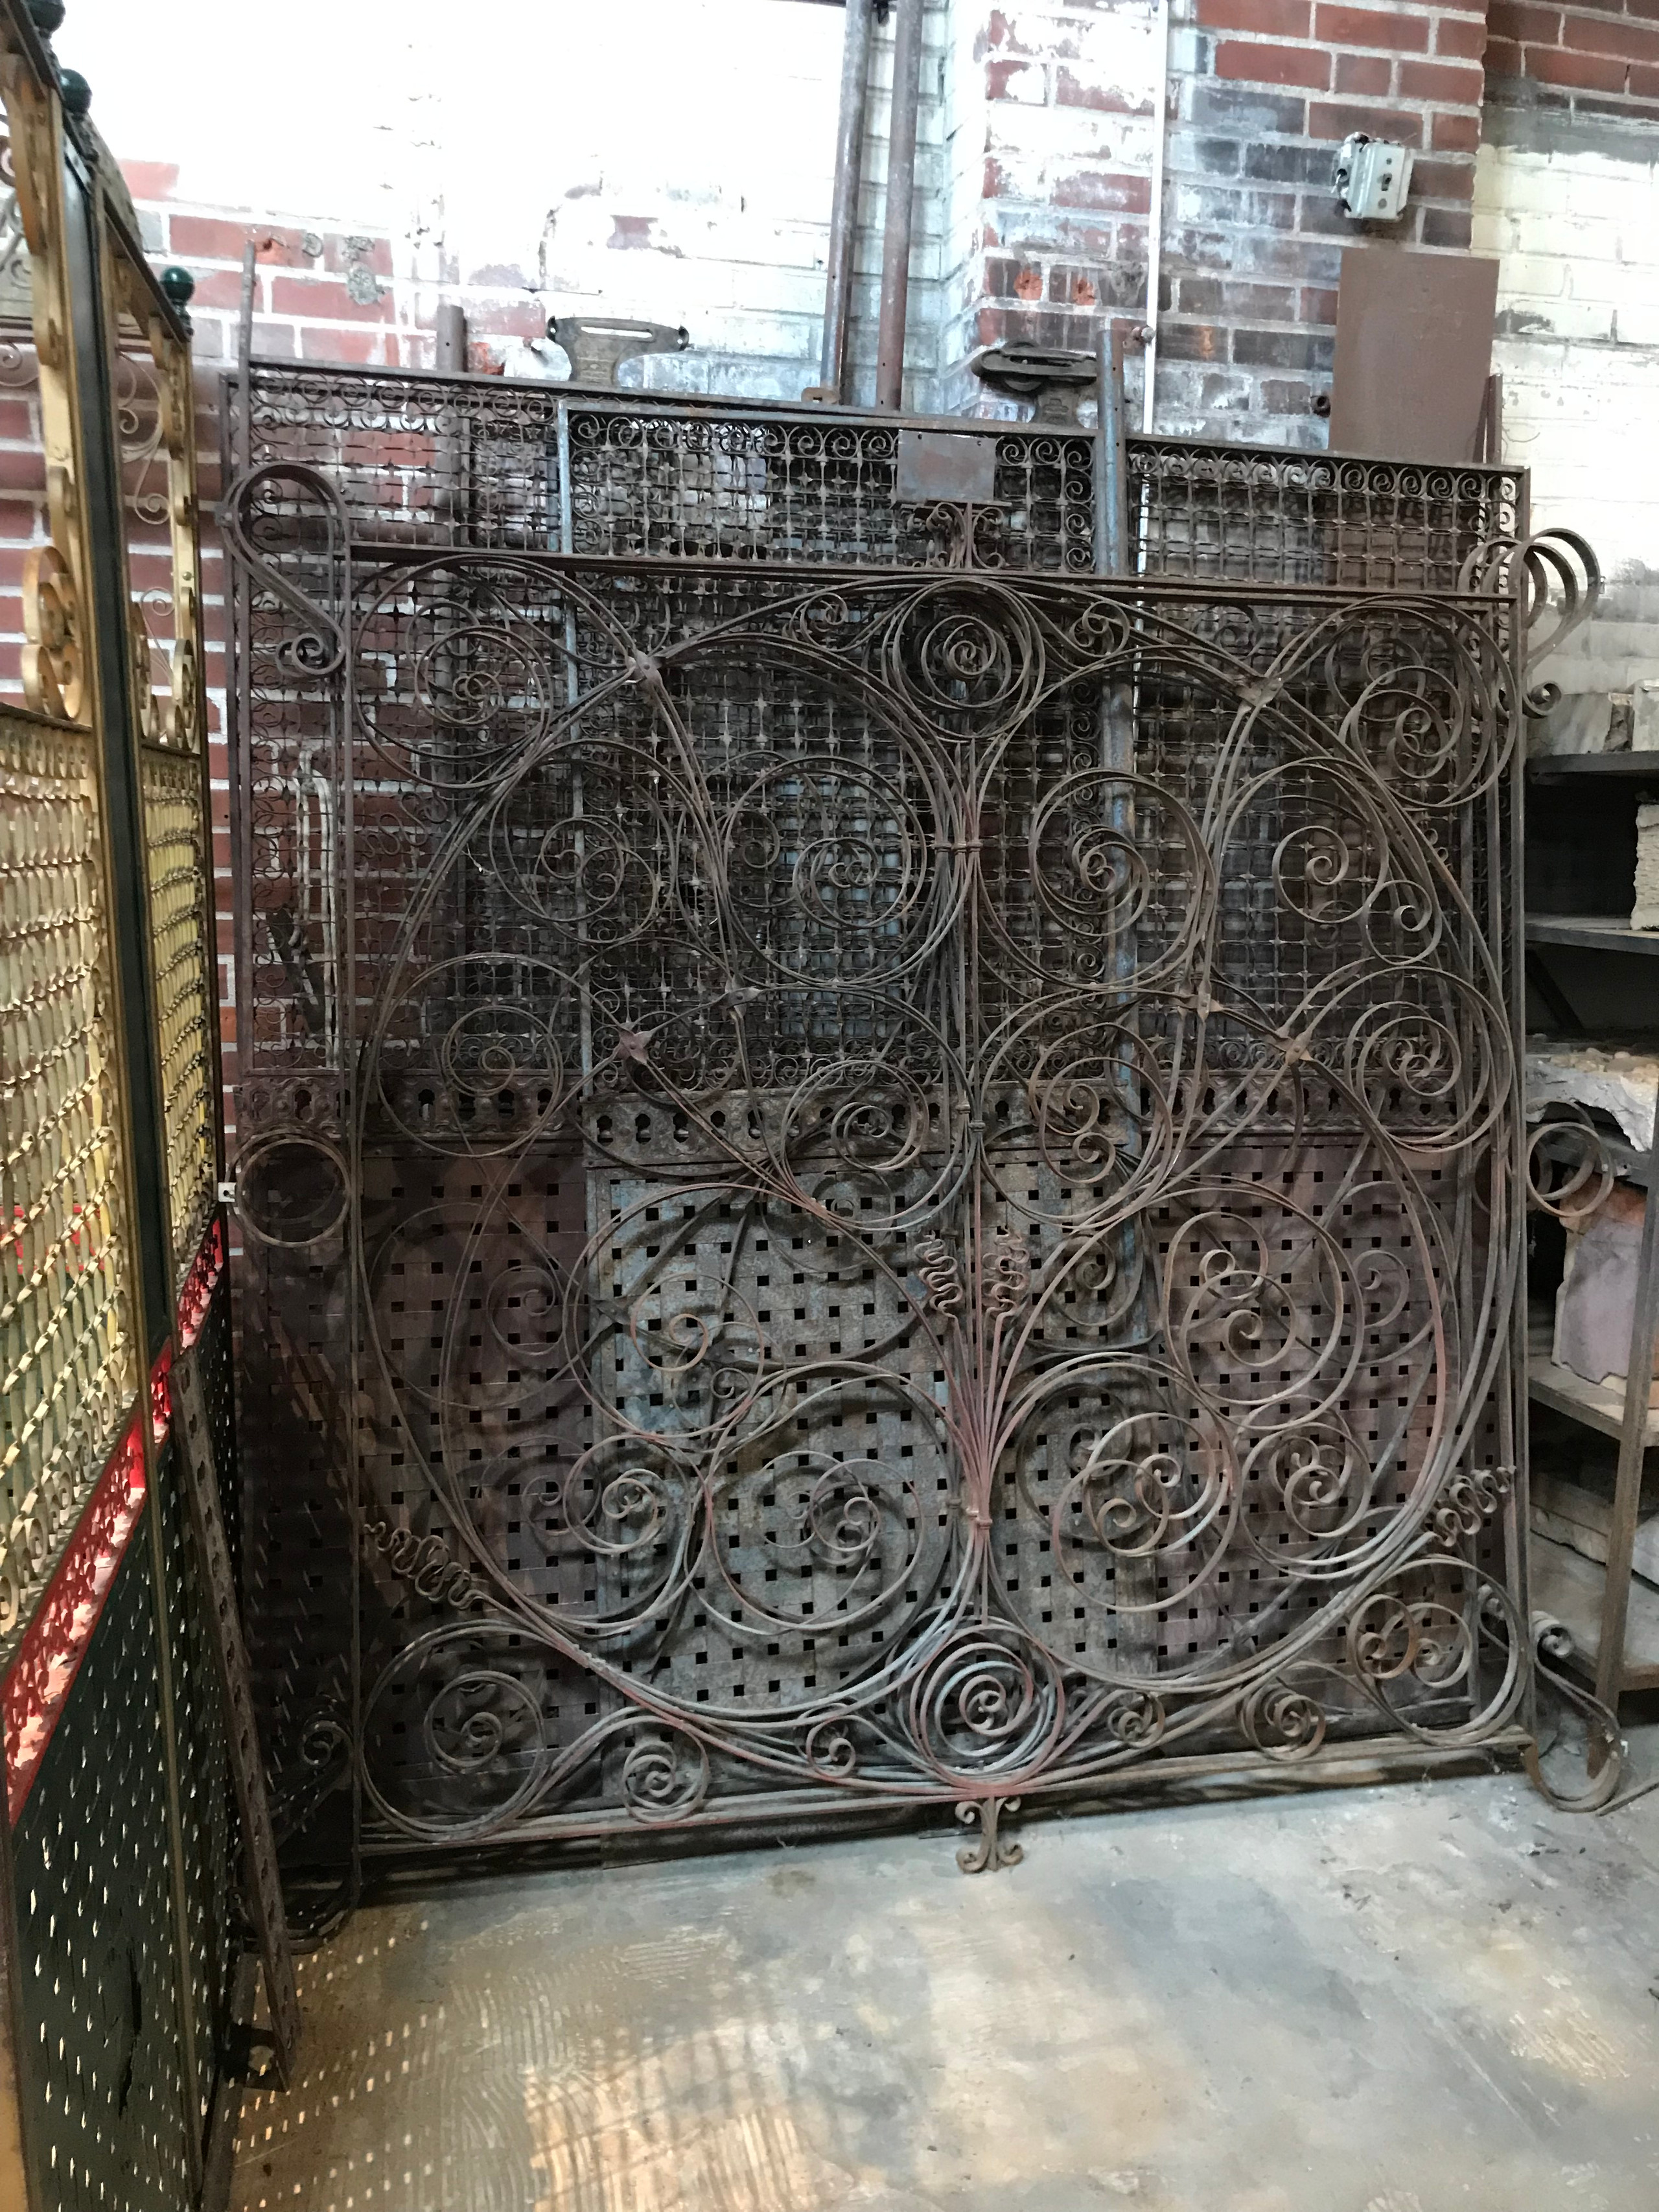 Vintage OTIS elevator cage from the Stifel Building in St. Louis MO.